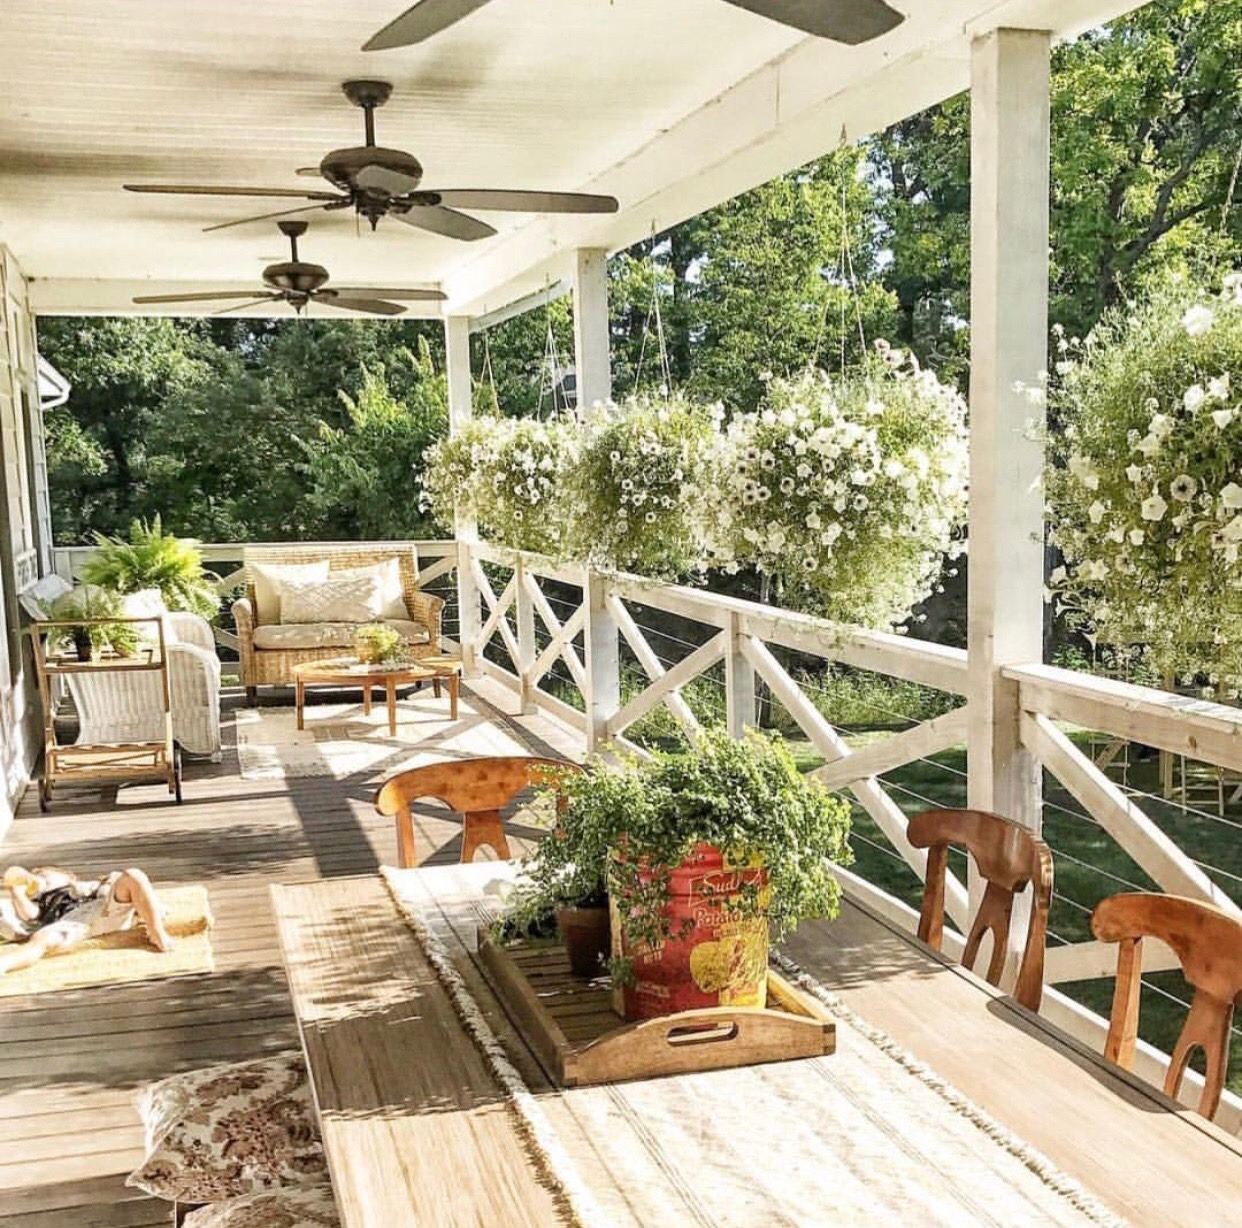 outdoors, outdoor spaces, furniture and porch